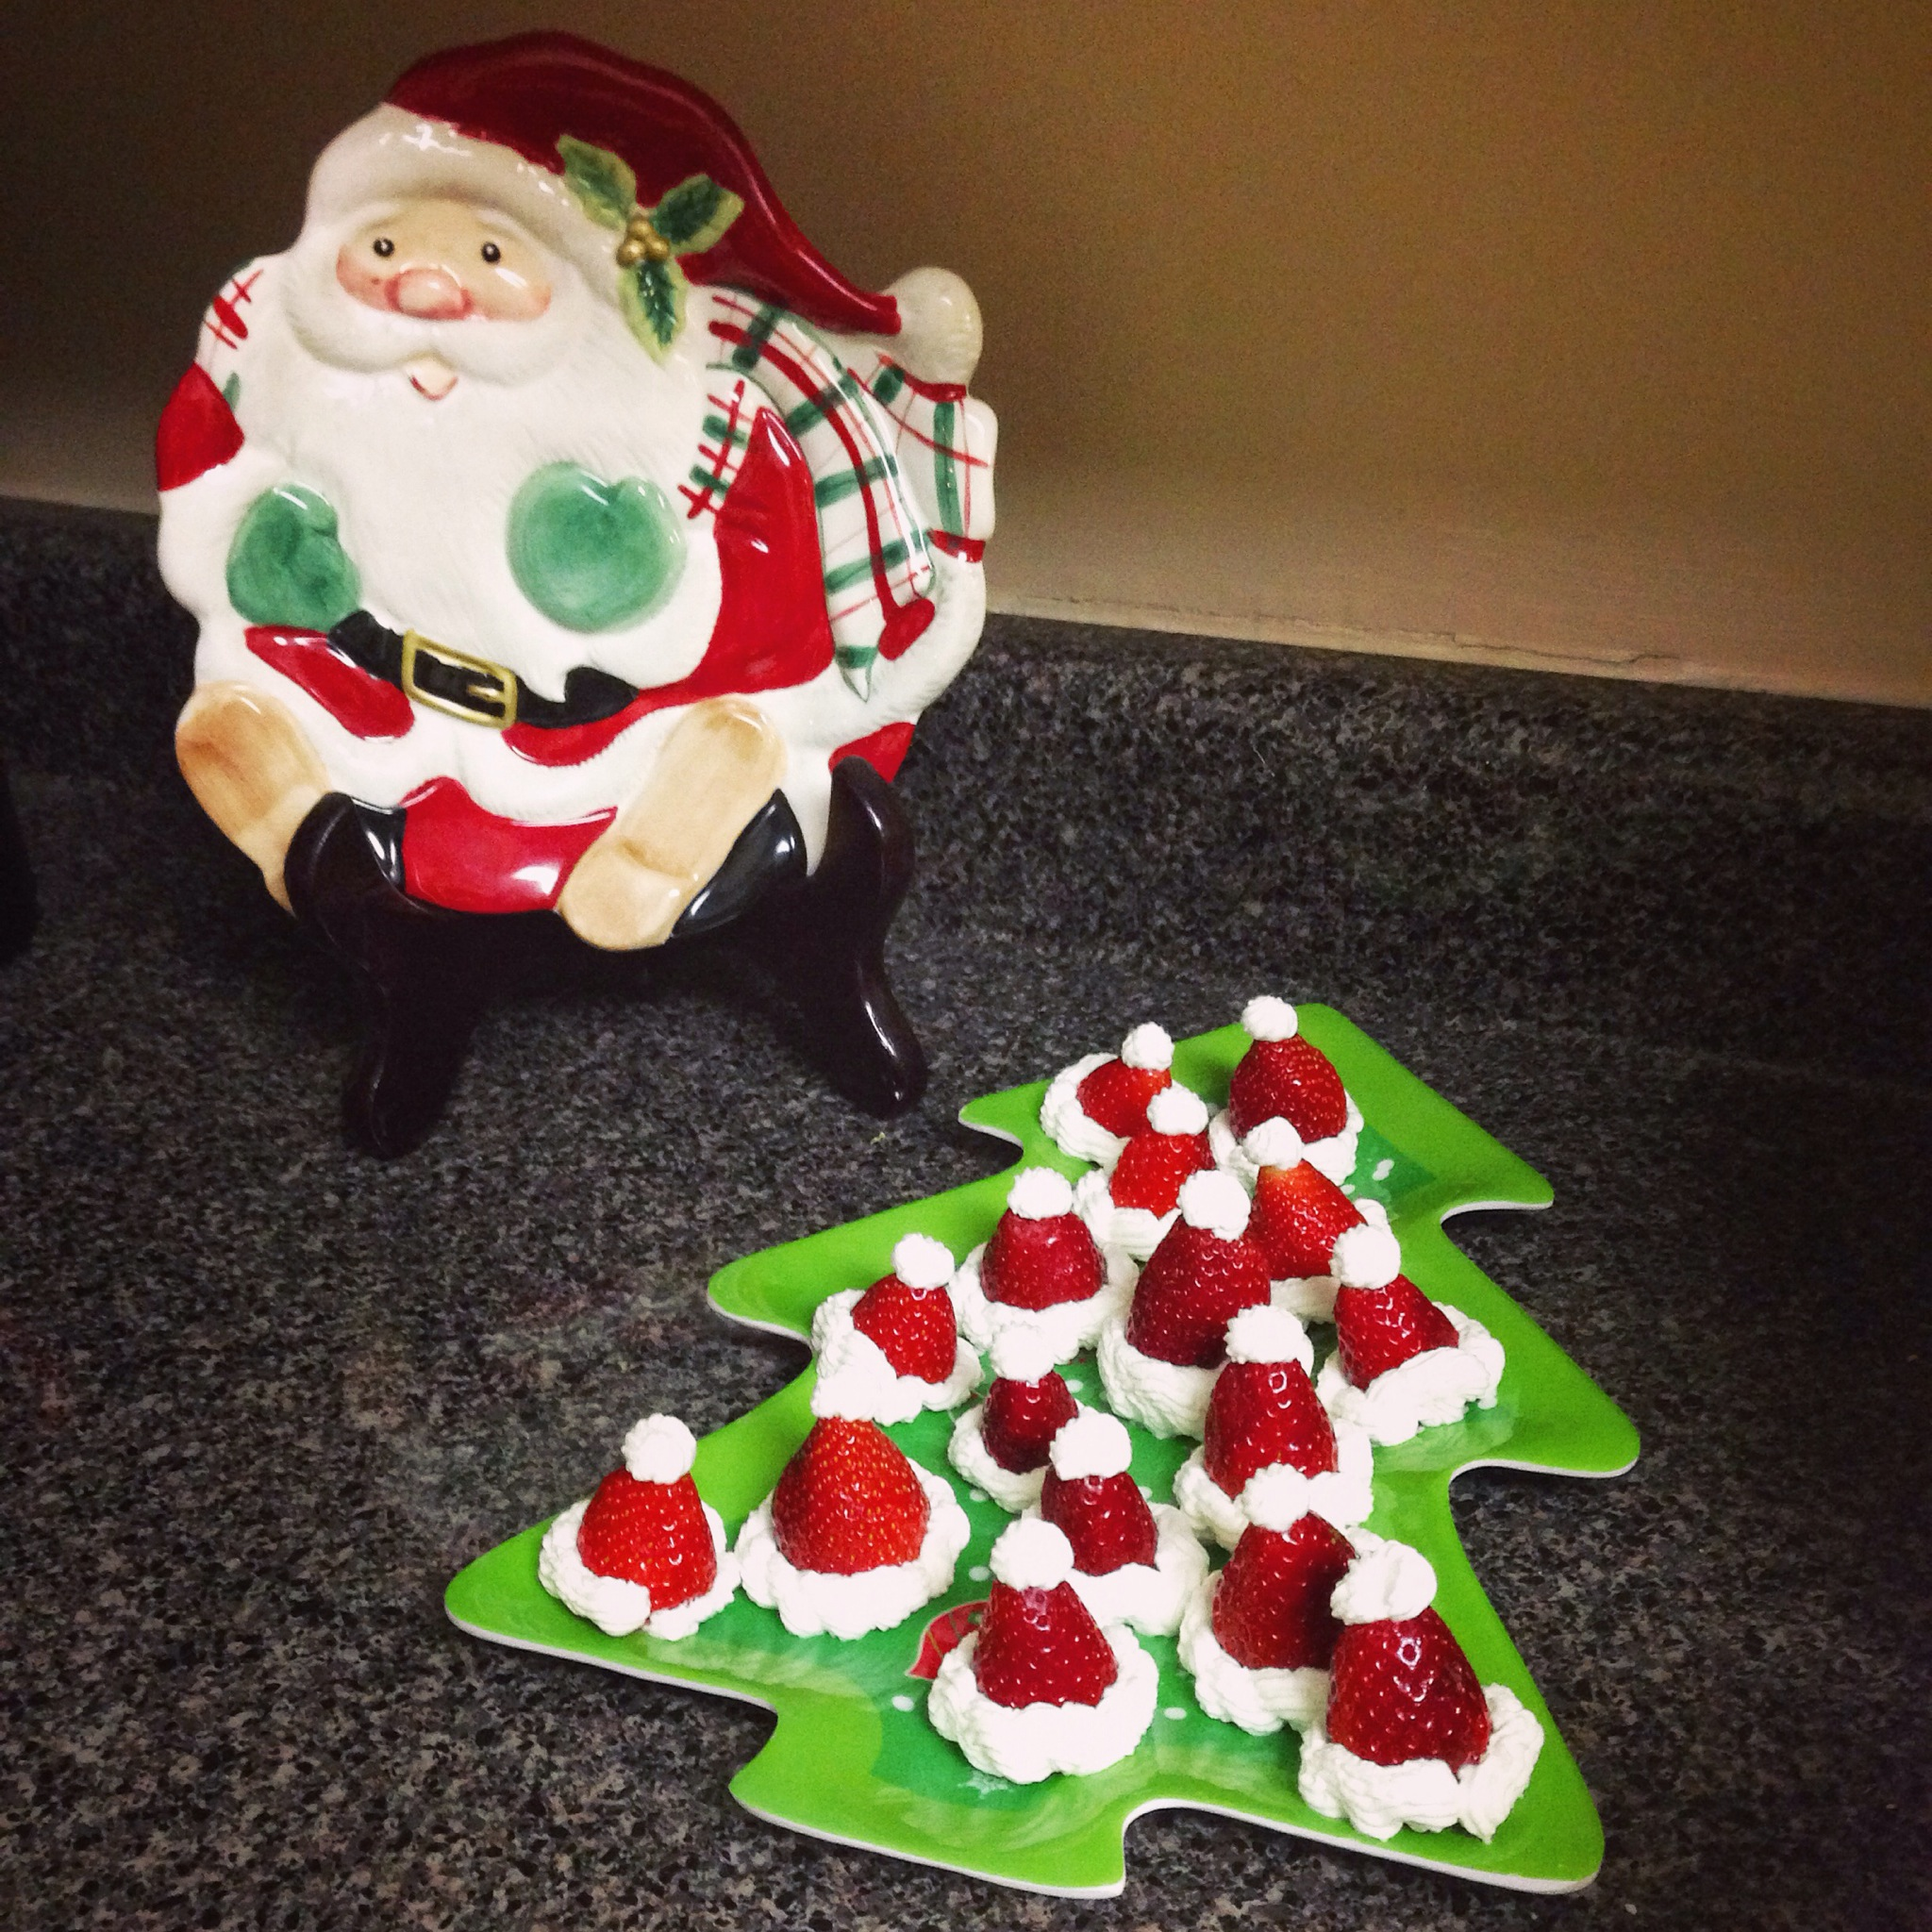 Strawberry christmas ornaments - This Holiday Season My Friend And I Decided To Host A Holiday Crafts Party We Gathered A Small Group Of Friends Together And Spent The Evening Noshing On